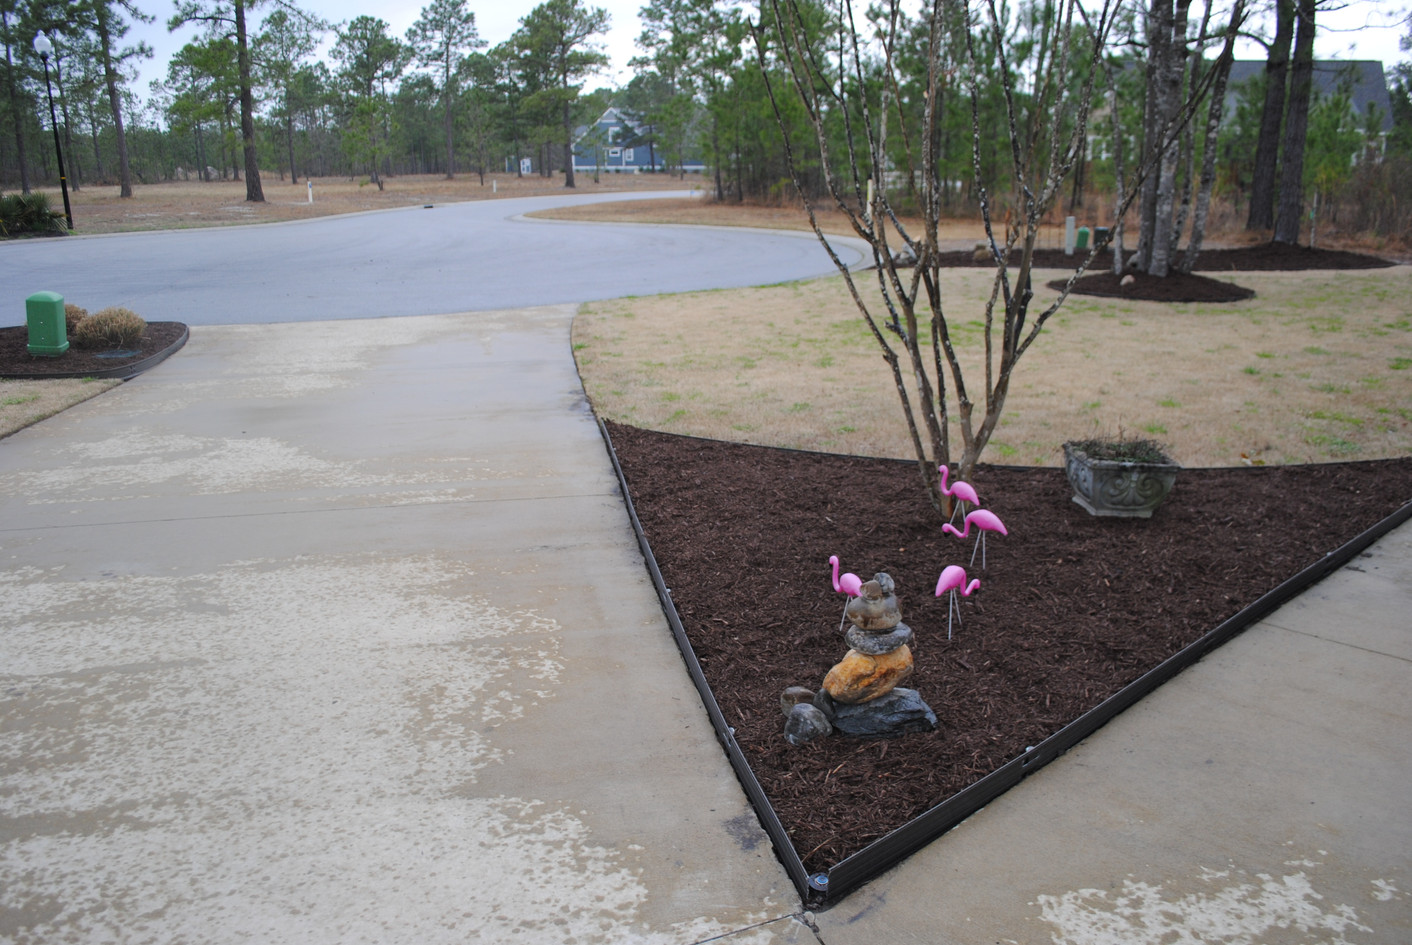 New edging at the driveway keeps mulch from staining the pavement.